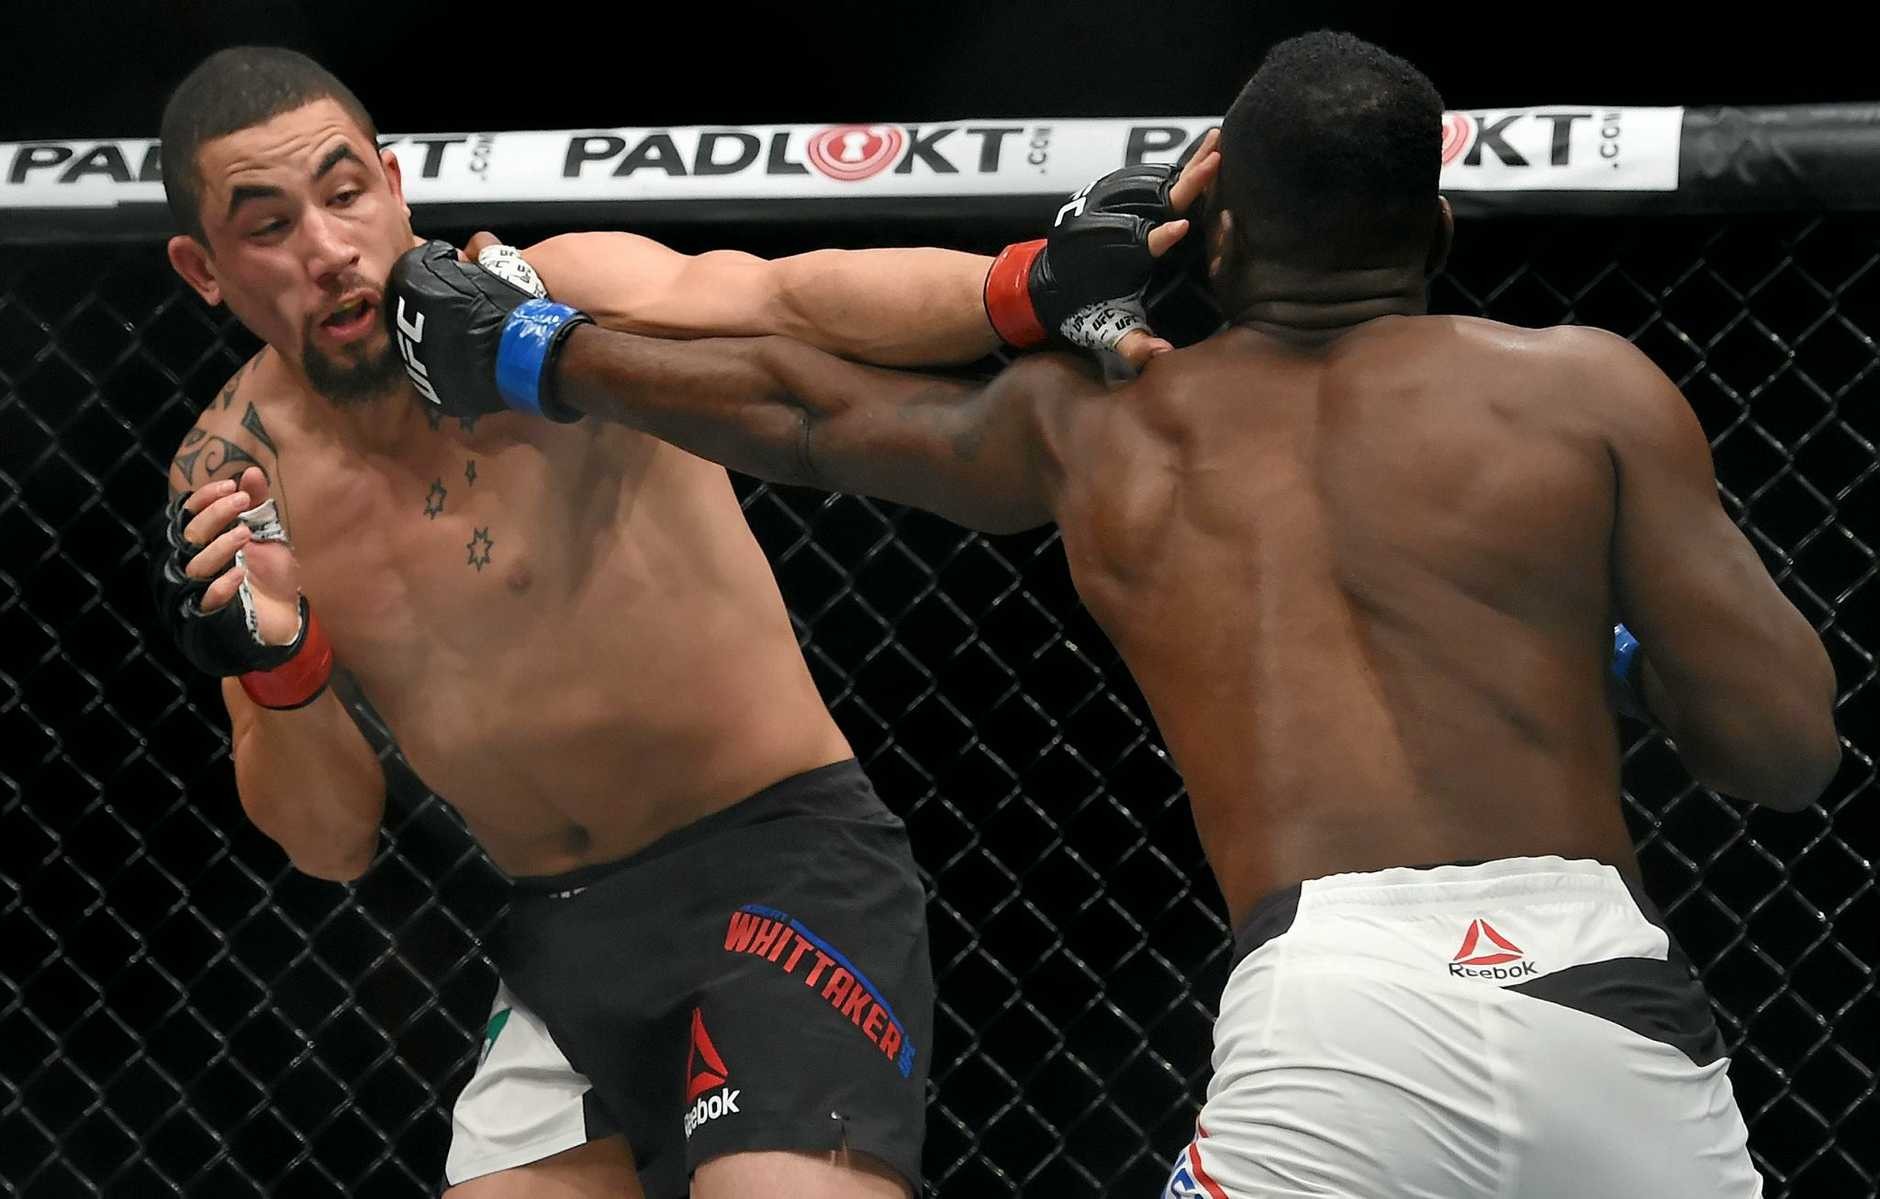 TITLE HOPES: Robert Whittaker (pictured fighting against Derek Brunson) will become the first Australian to hold a UFC title if he can overcome Yoel Romero to secure the Interim Middleweight title at UFC 213 this weekend.